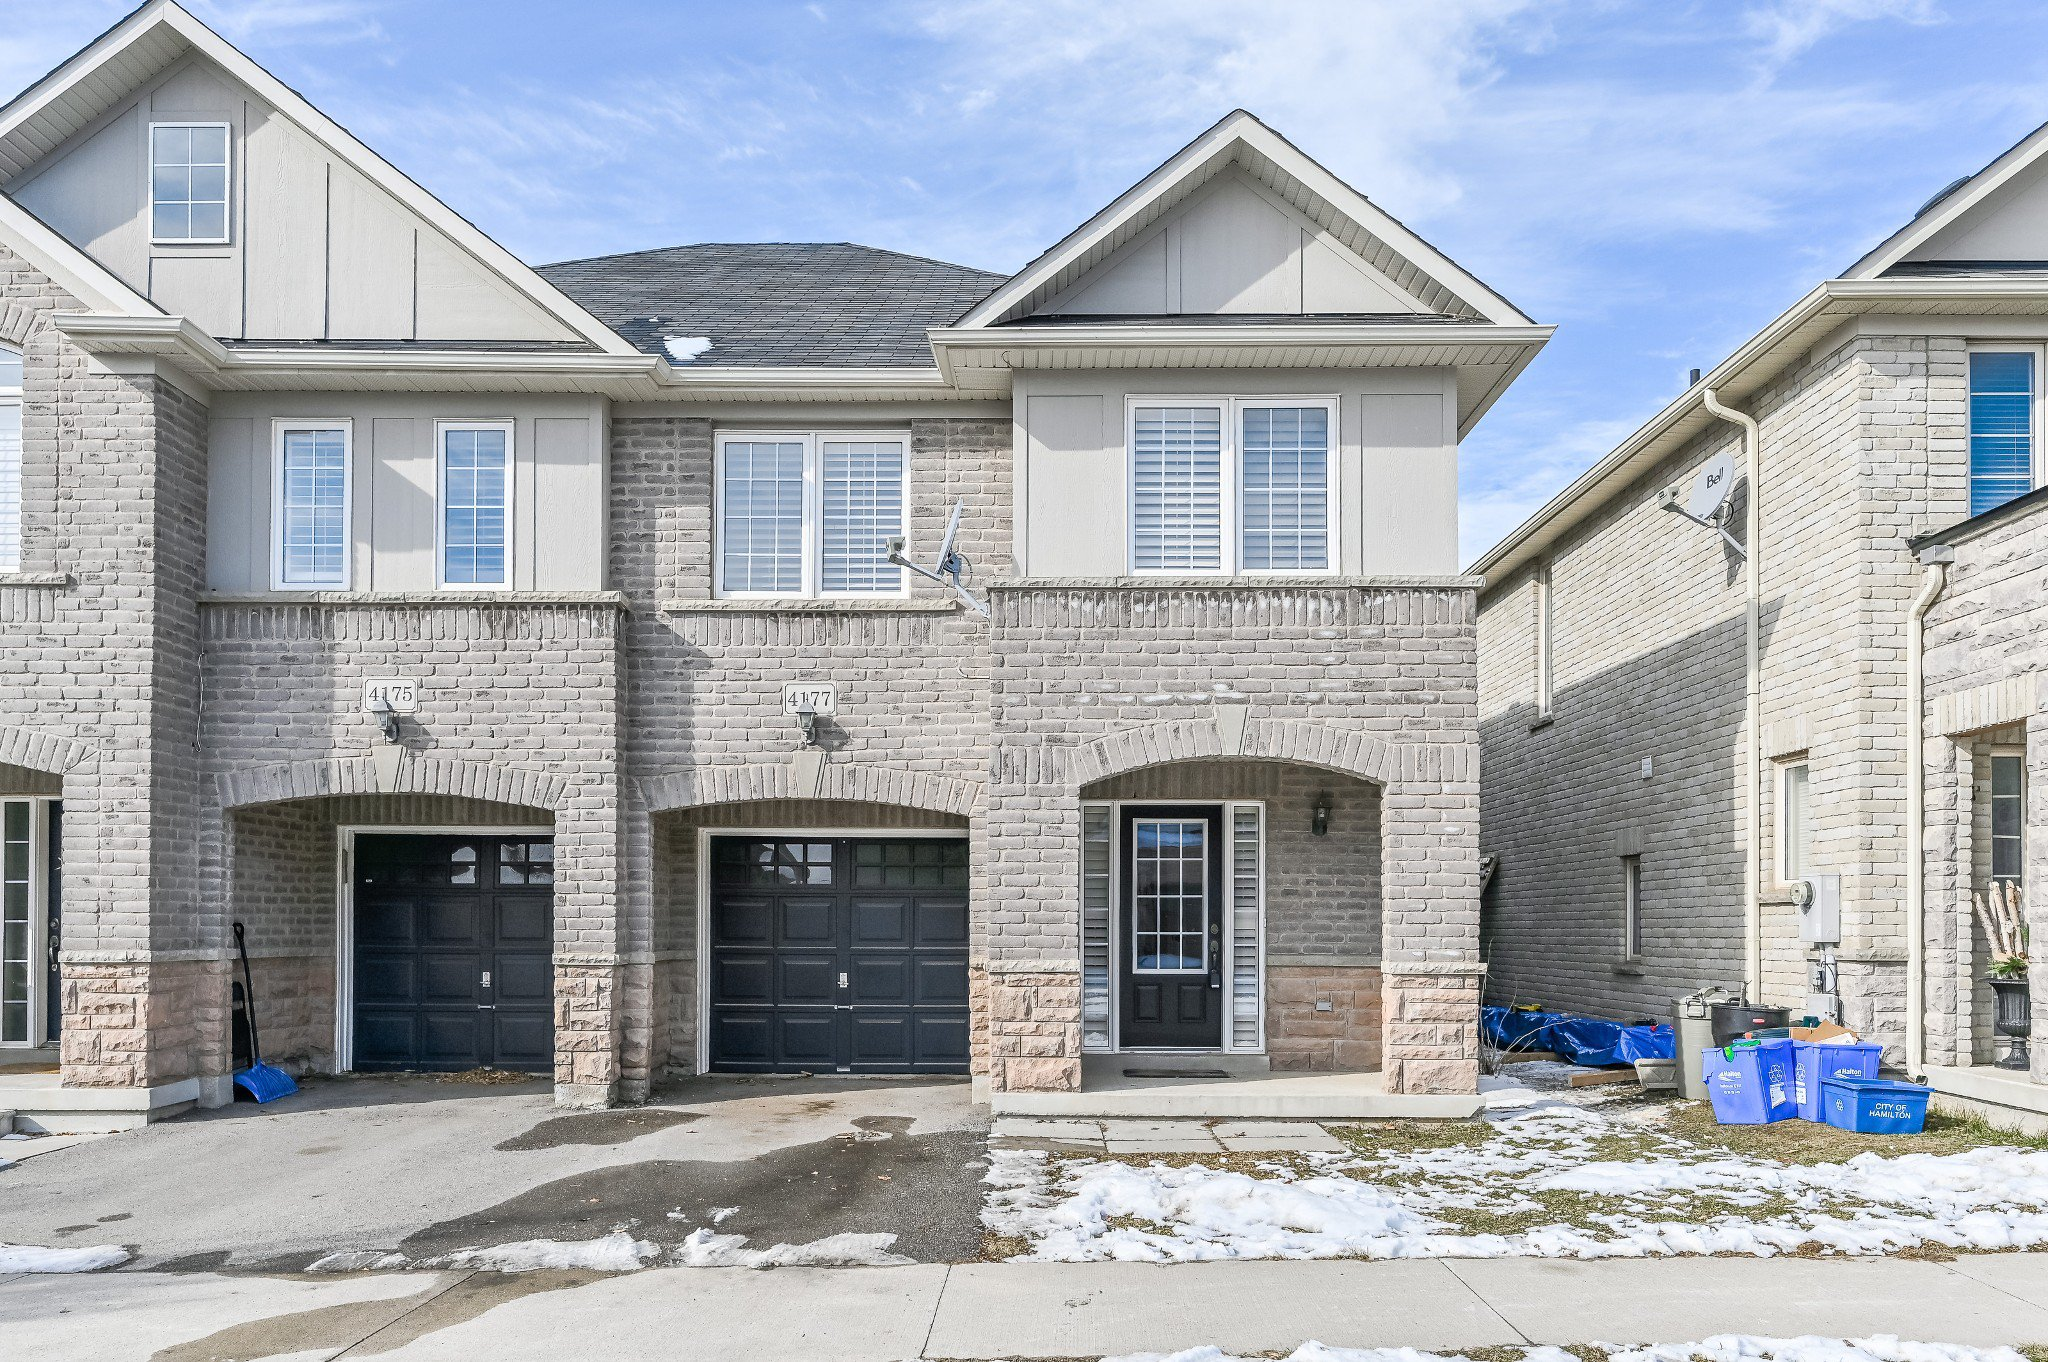 Main Photo: 4177 Cole Crescent in burlington: House for sale : MLS®# H4072660